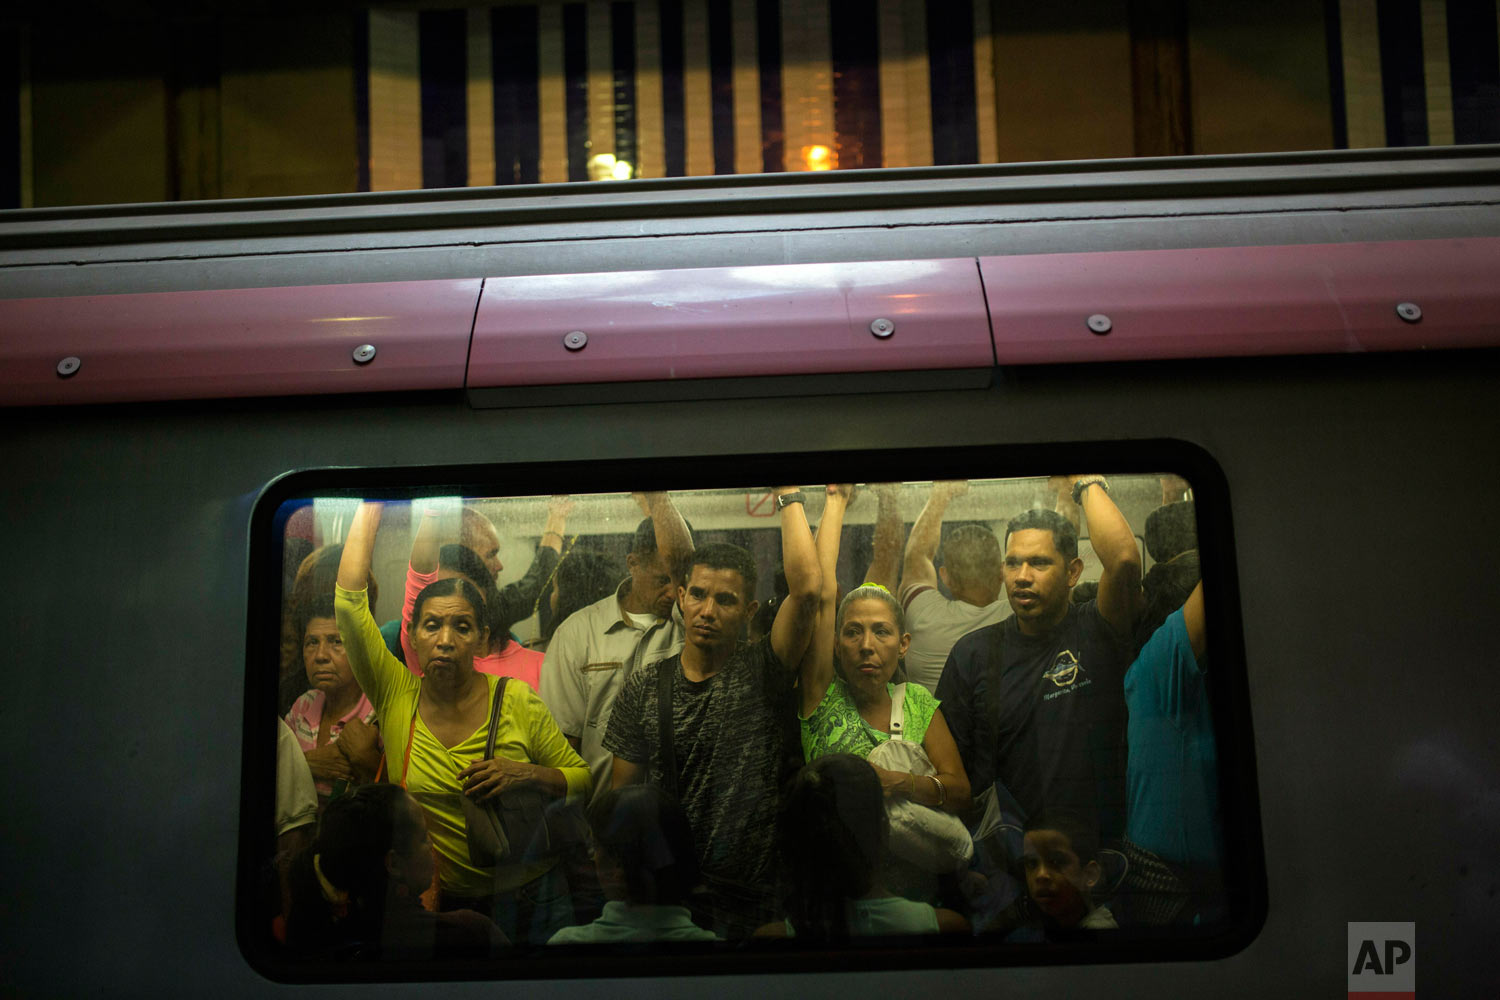 People commute in the subway in Caracas, Venezuela, Friday, May 10, 2019. More than 3 million Venezuelans have left their homeland in recent years amid skyrocketing inflation and shortages of food and medicine. U.S. administration officials have warned that 2 million more are expected to flee by the end of the year if the crisis continues in the oil-rich nation. (AP Photo/Rodrigo Abd)